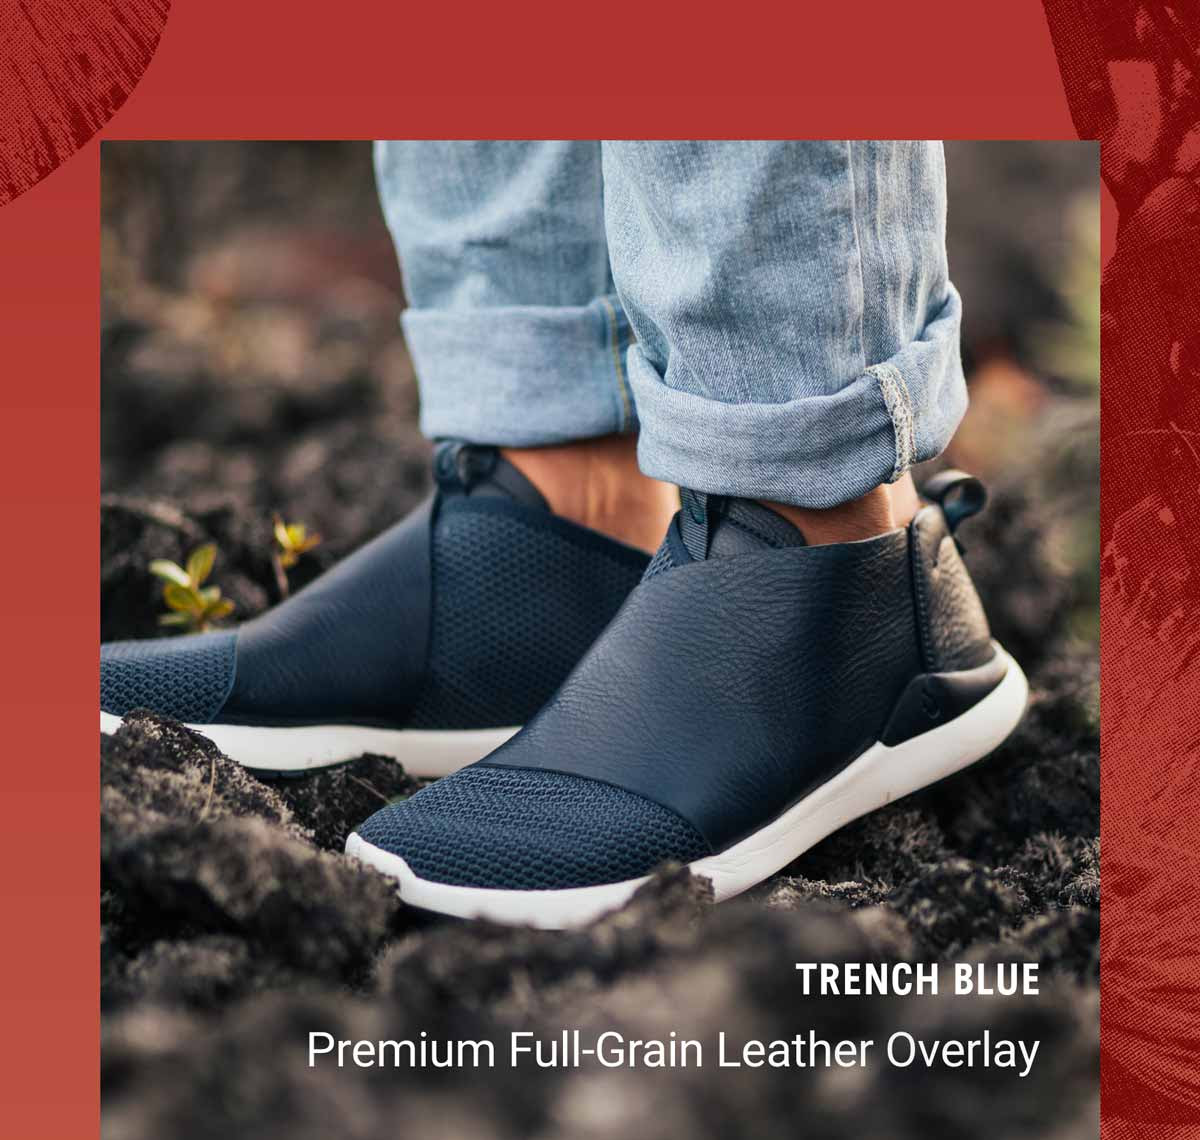 Image of man wearing Kilipue sneaker. Text. ''Premium Full-Grain Leather Overlay''.